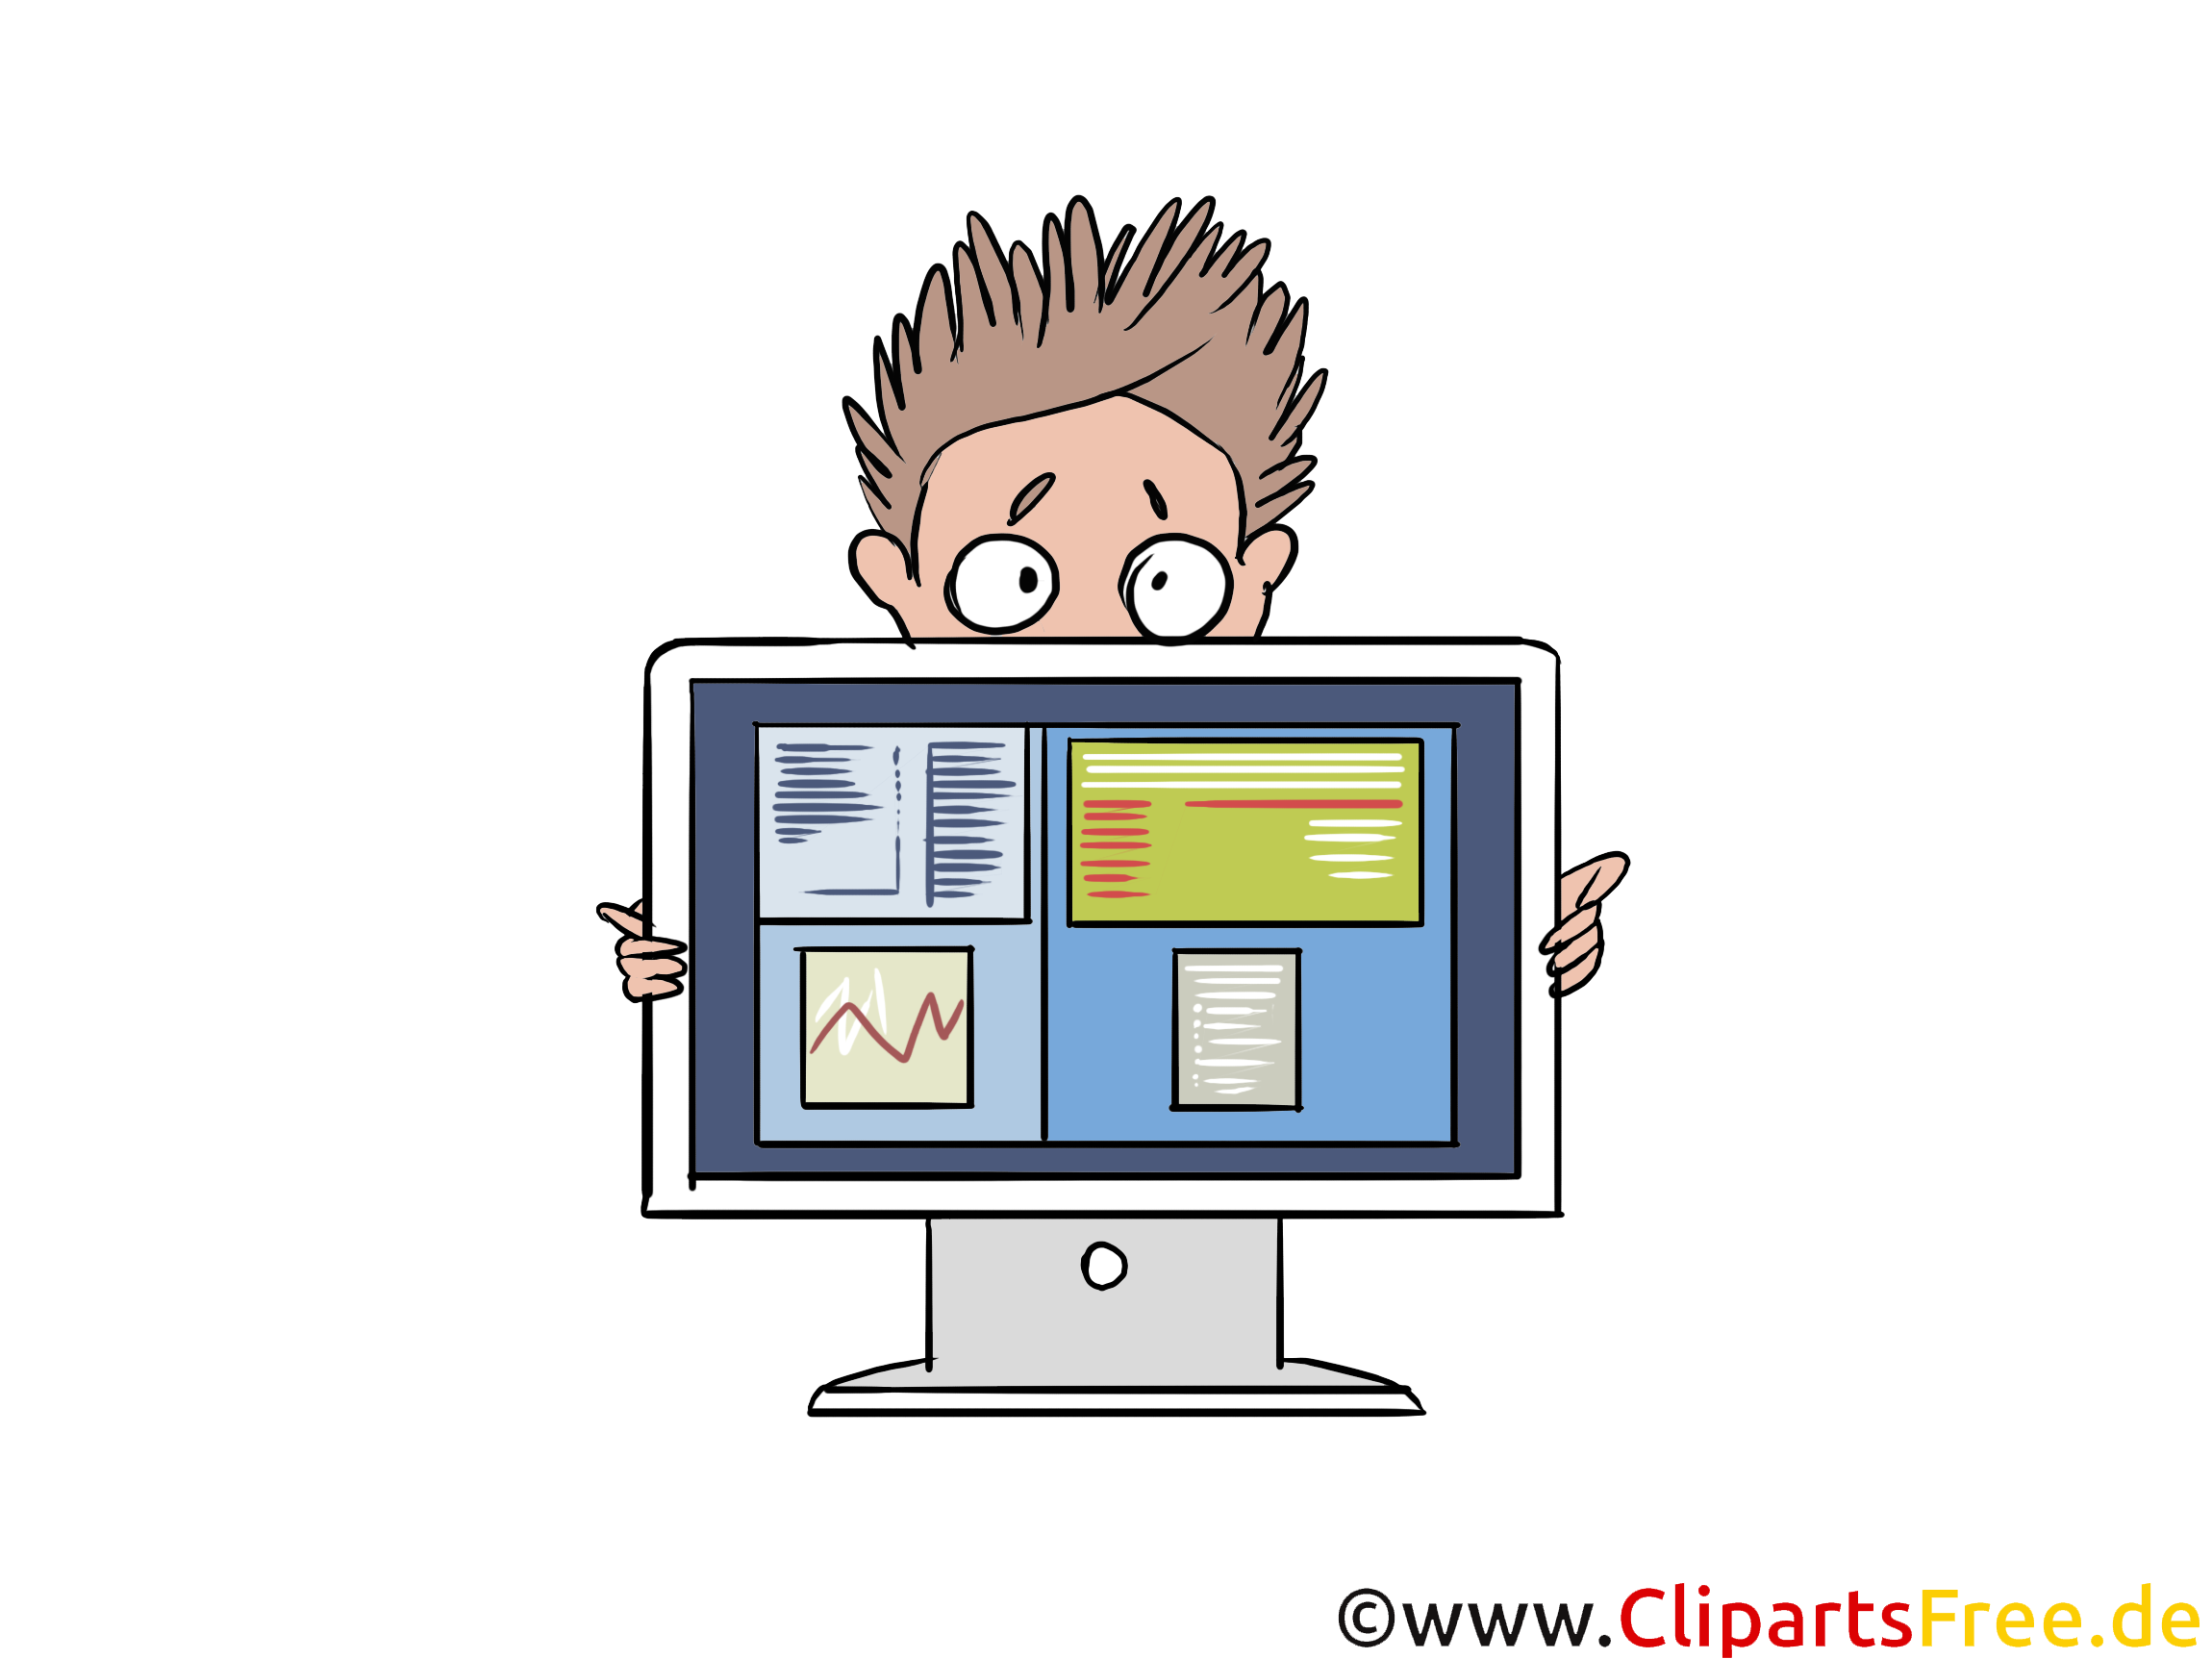 Produktpräsentation Clipart, Bild, Illustration